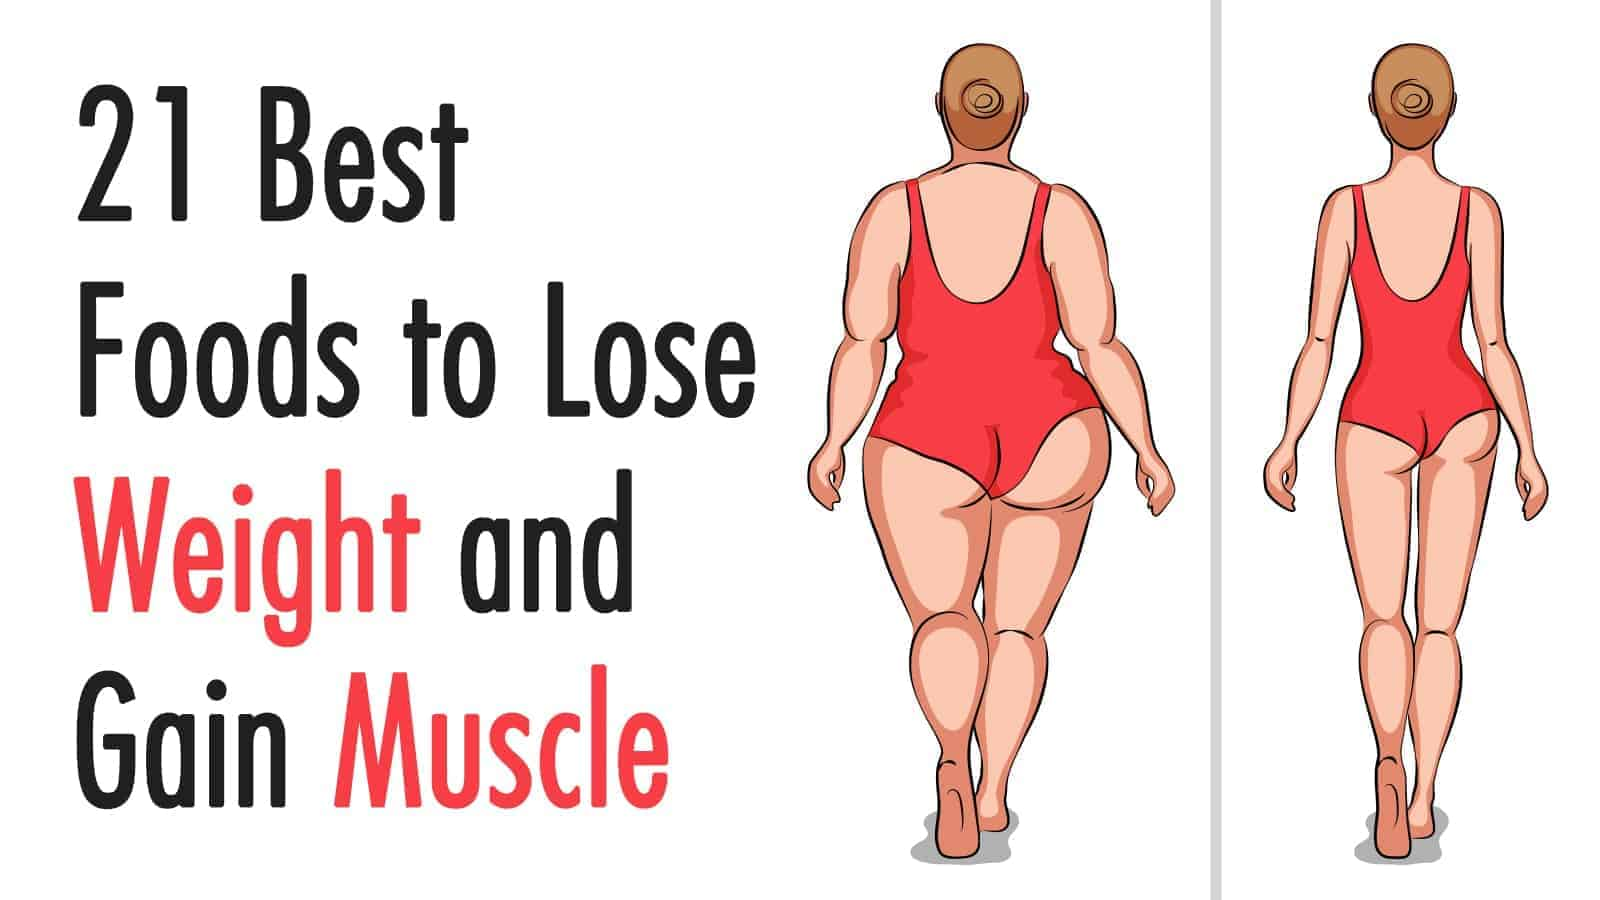 Muscle Losing Weight Gaining Vs